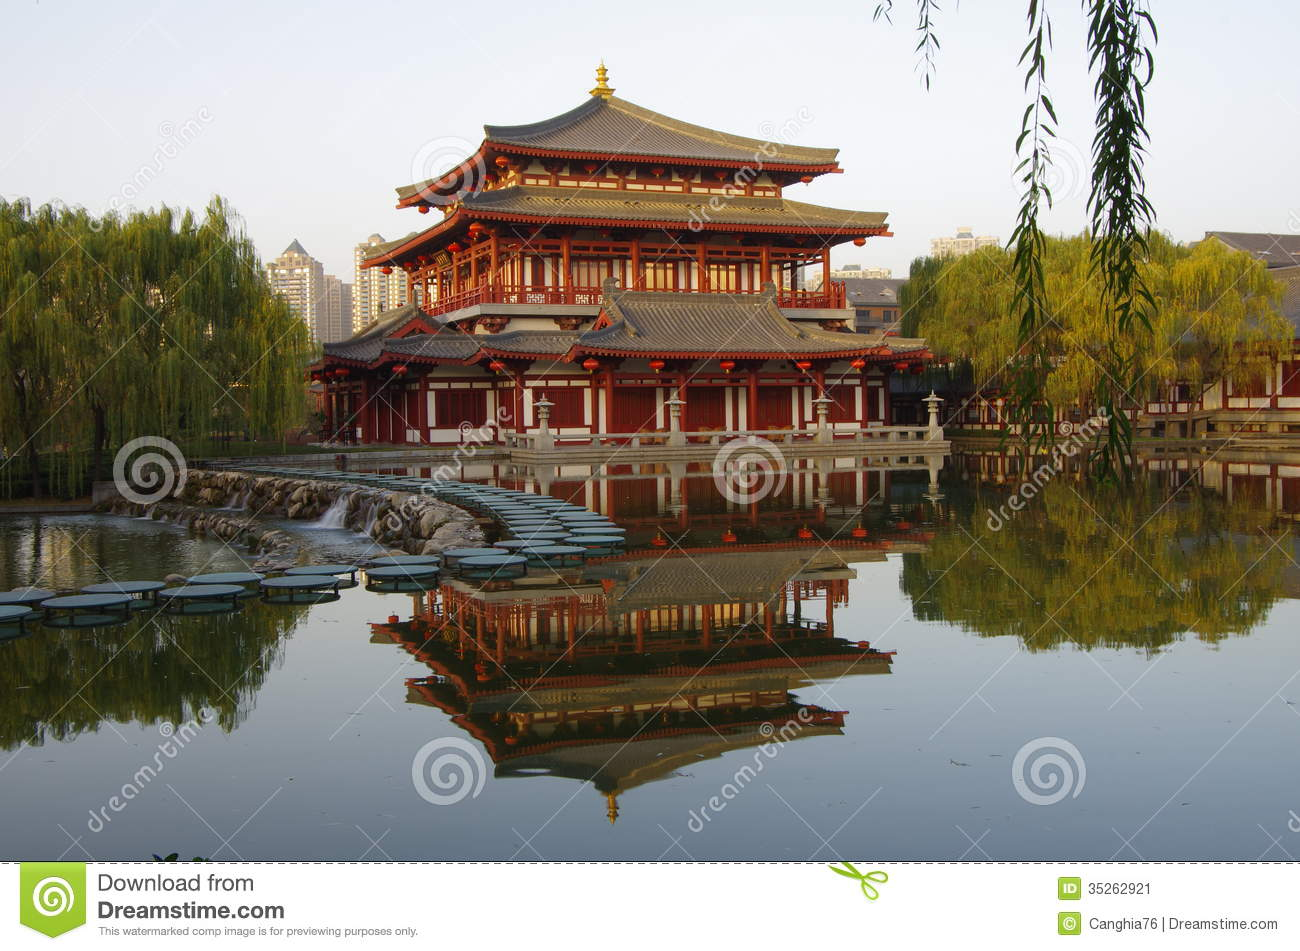 Xi \'an Datang Furong Garden In China Stock Image - Image of datang ...